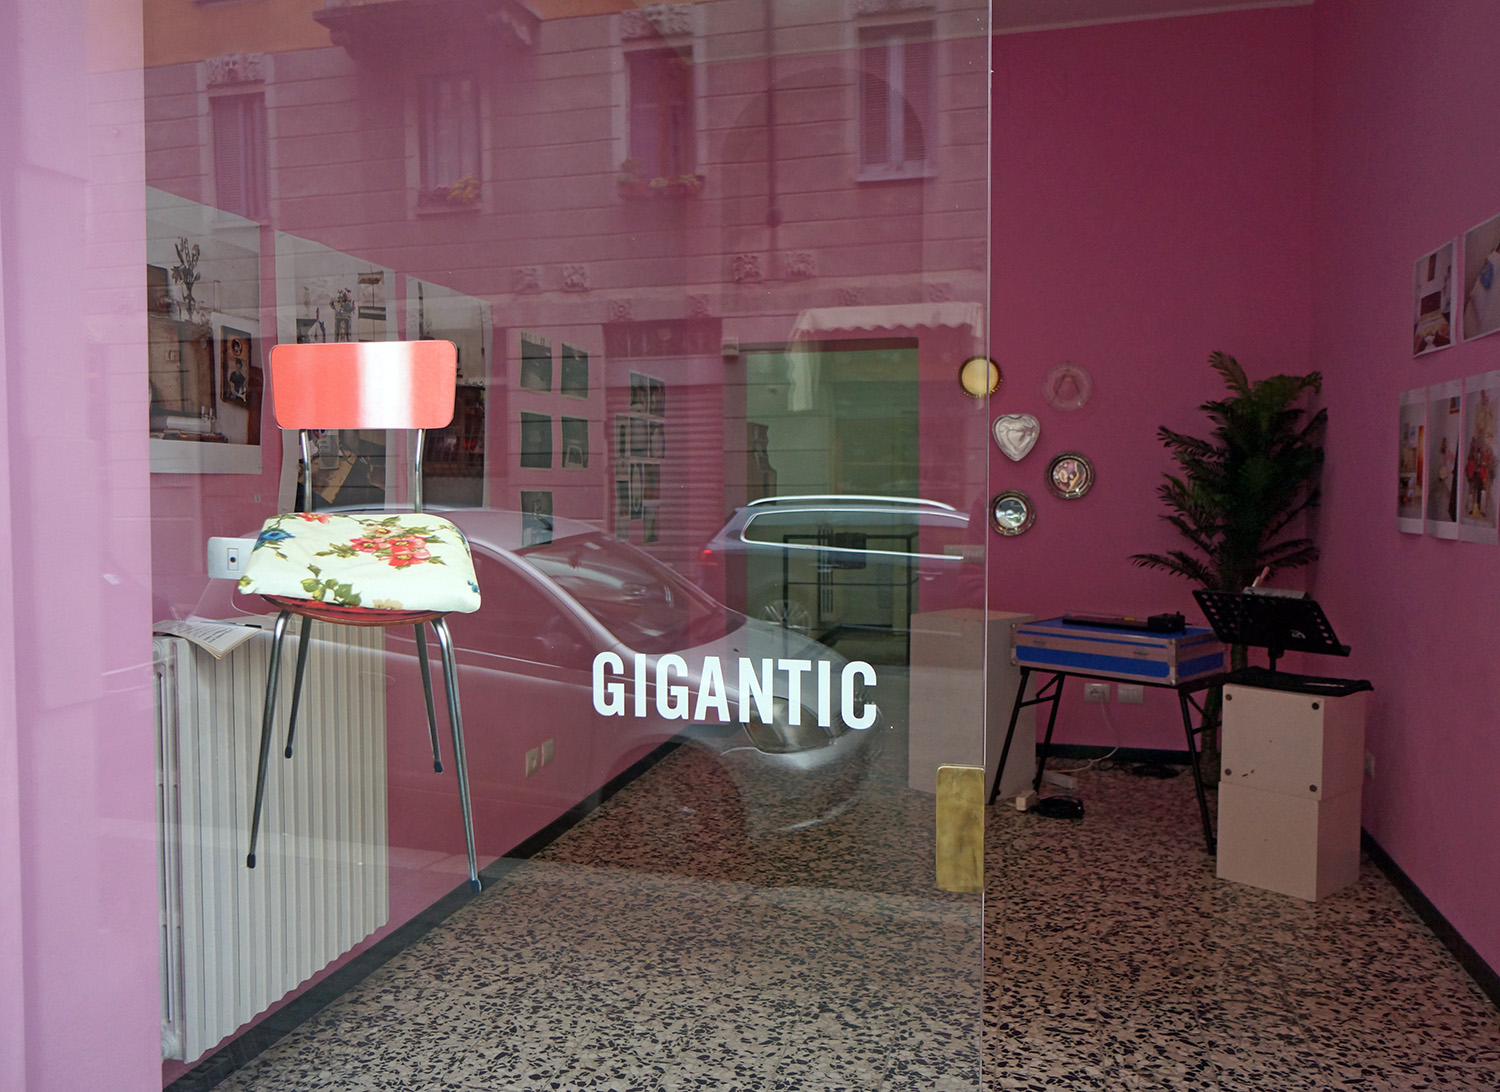 Gigantic - ©courtesy of the gallery